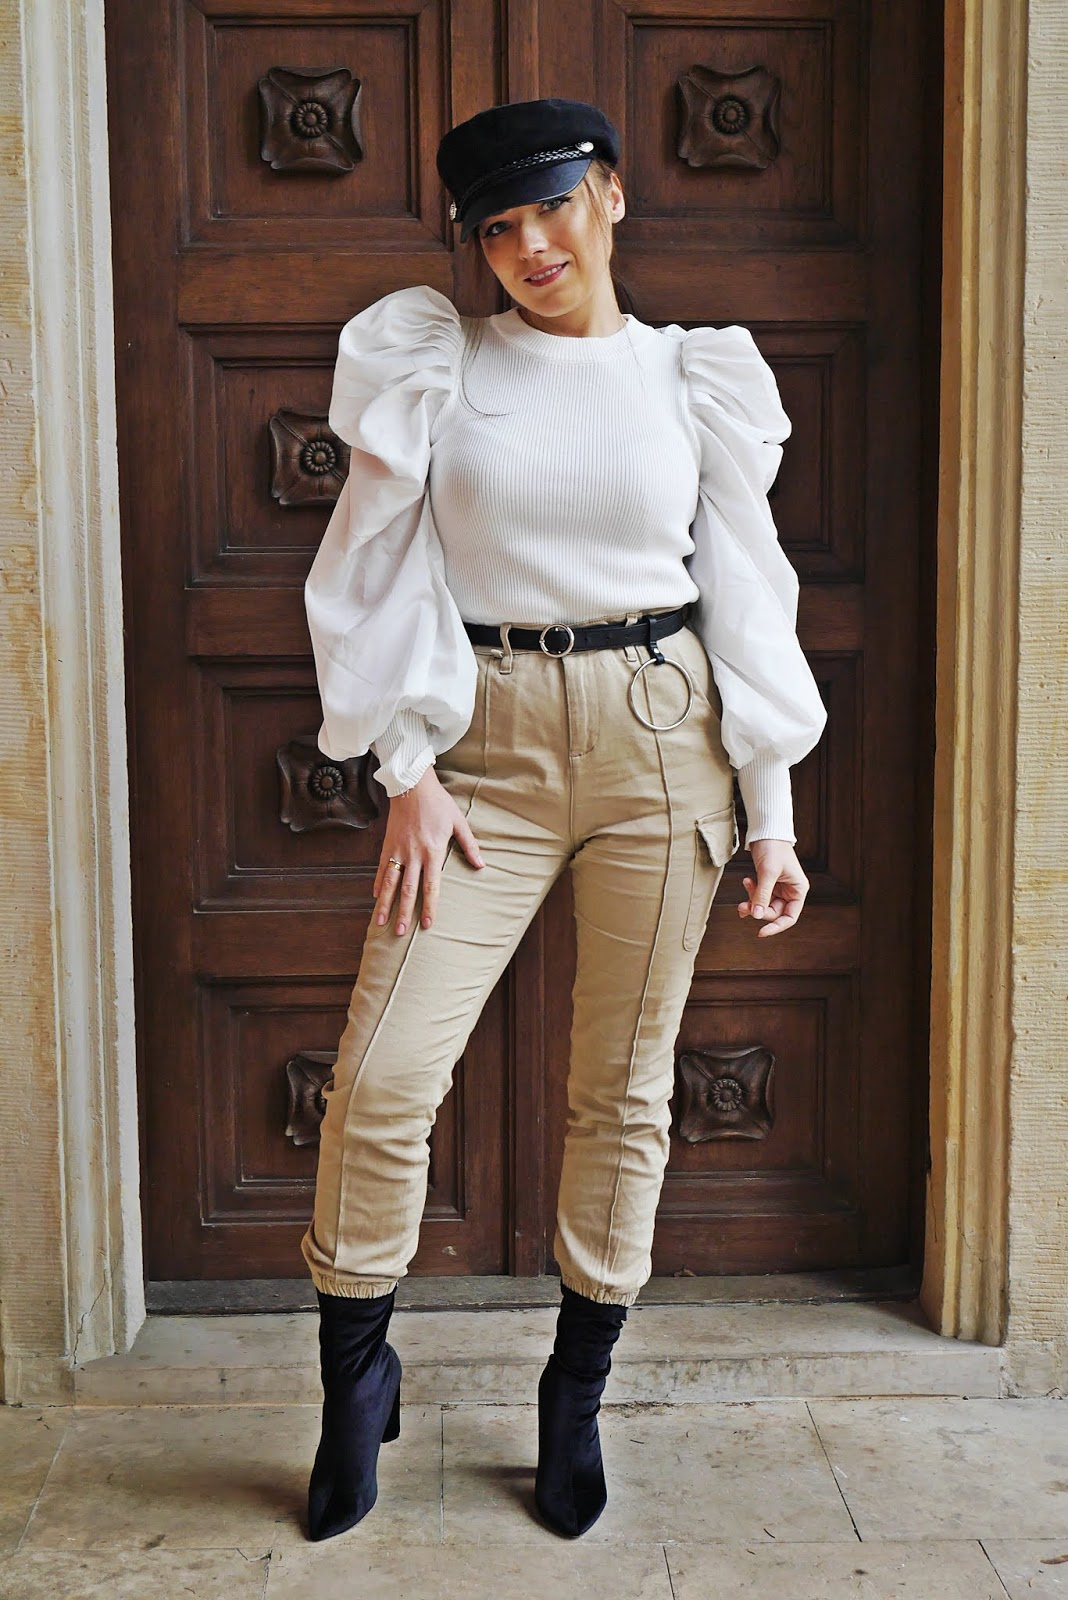 fashion blogger karyn cargo pants white puff slave top femme luxe socks shoes aliexpress belt aliexprss outfit look stylish inspiration